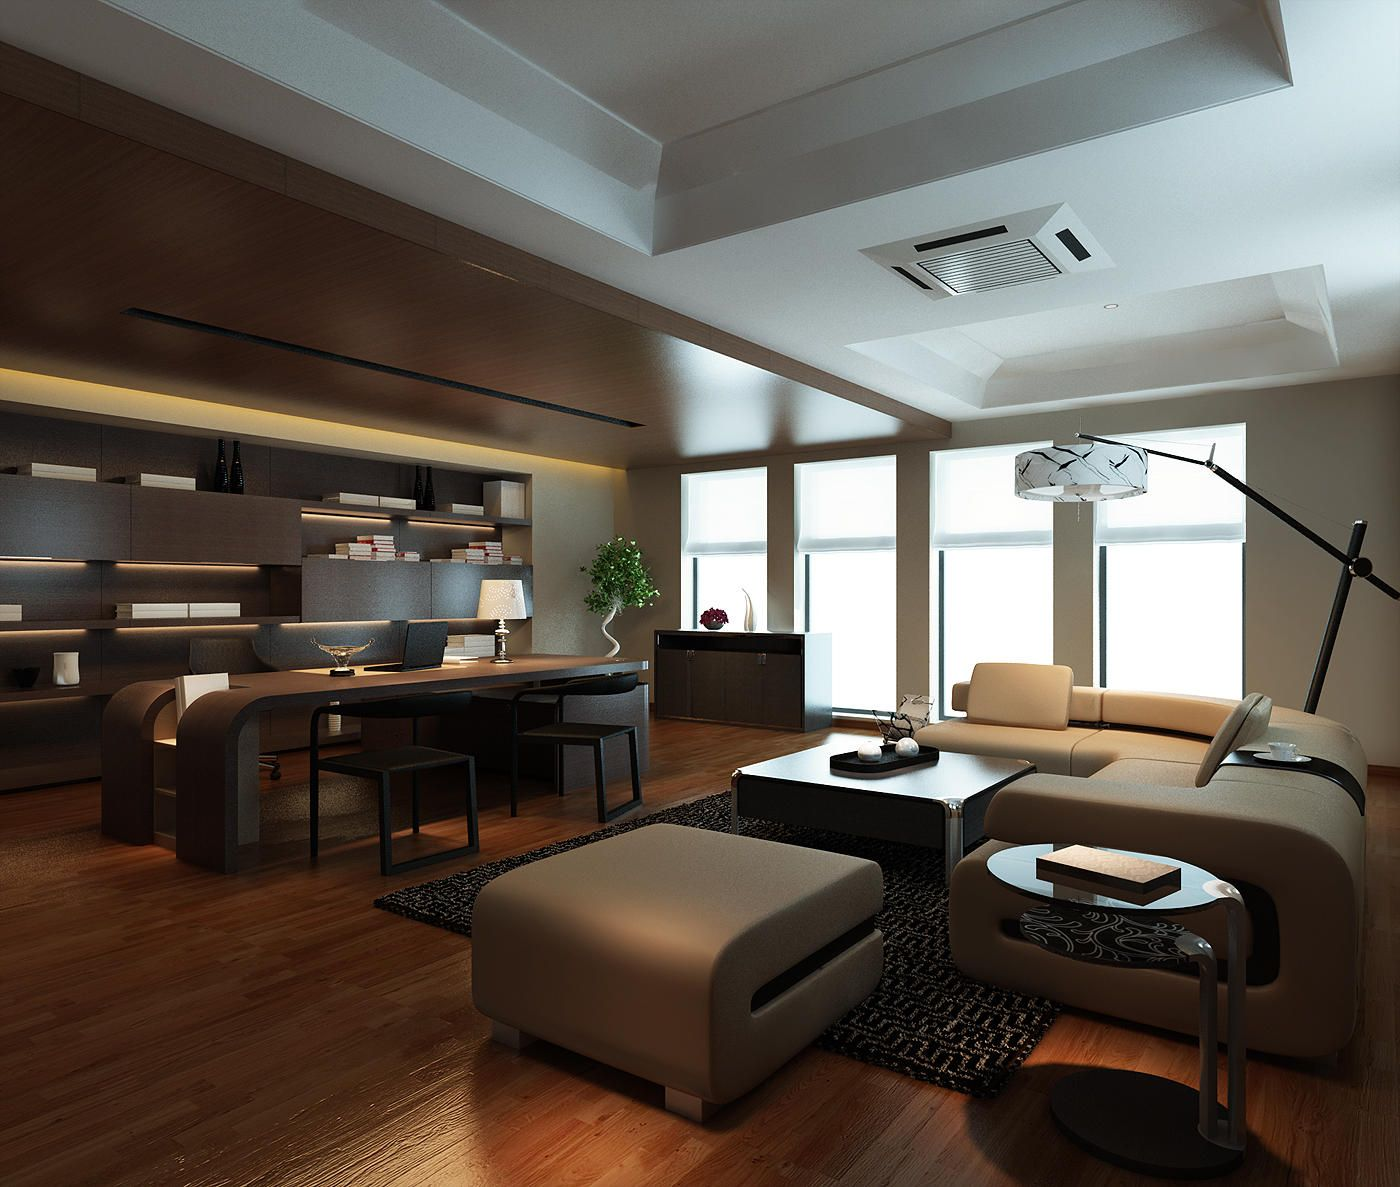 When limitless was commissioned to design this executive for One room office interior design